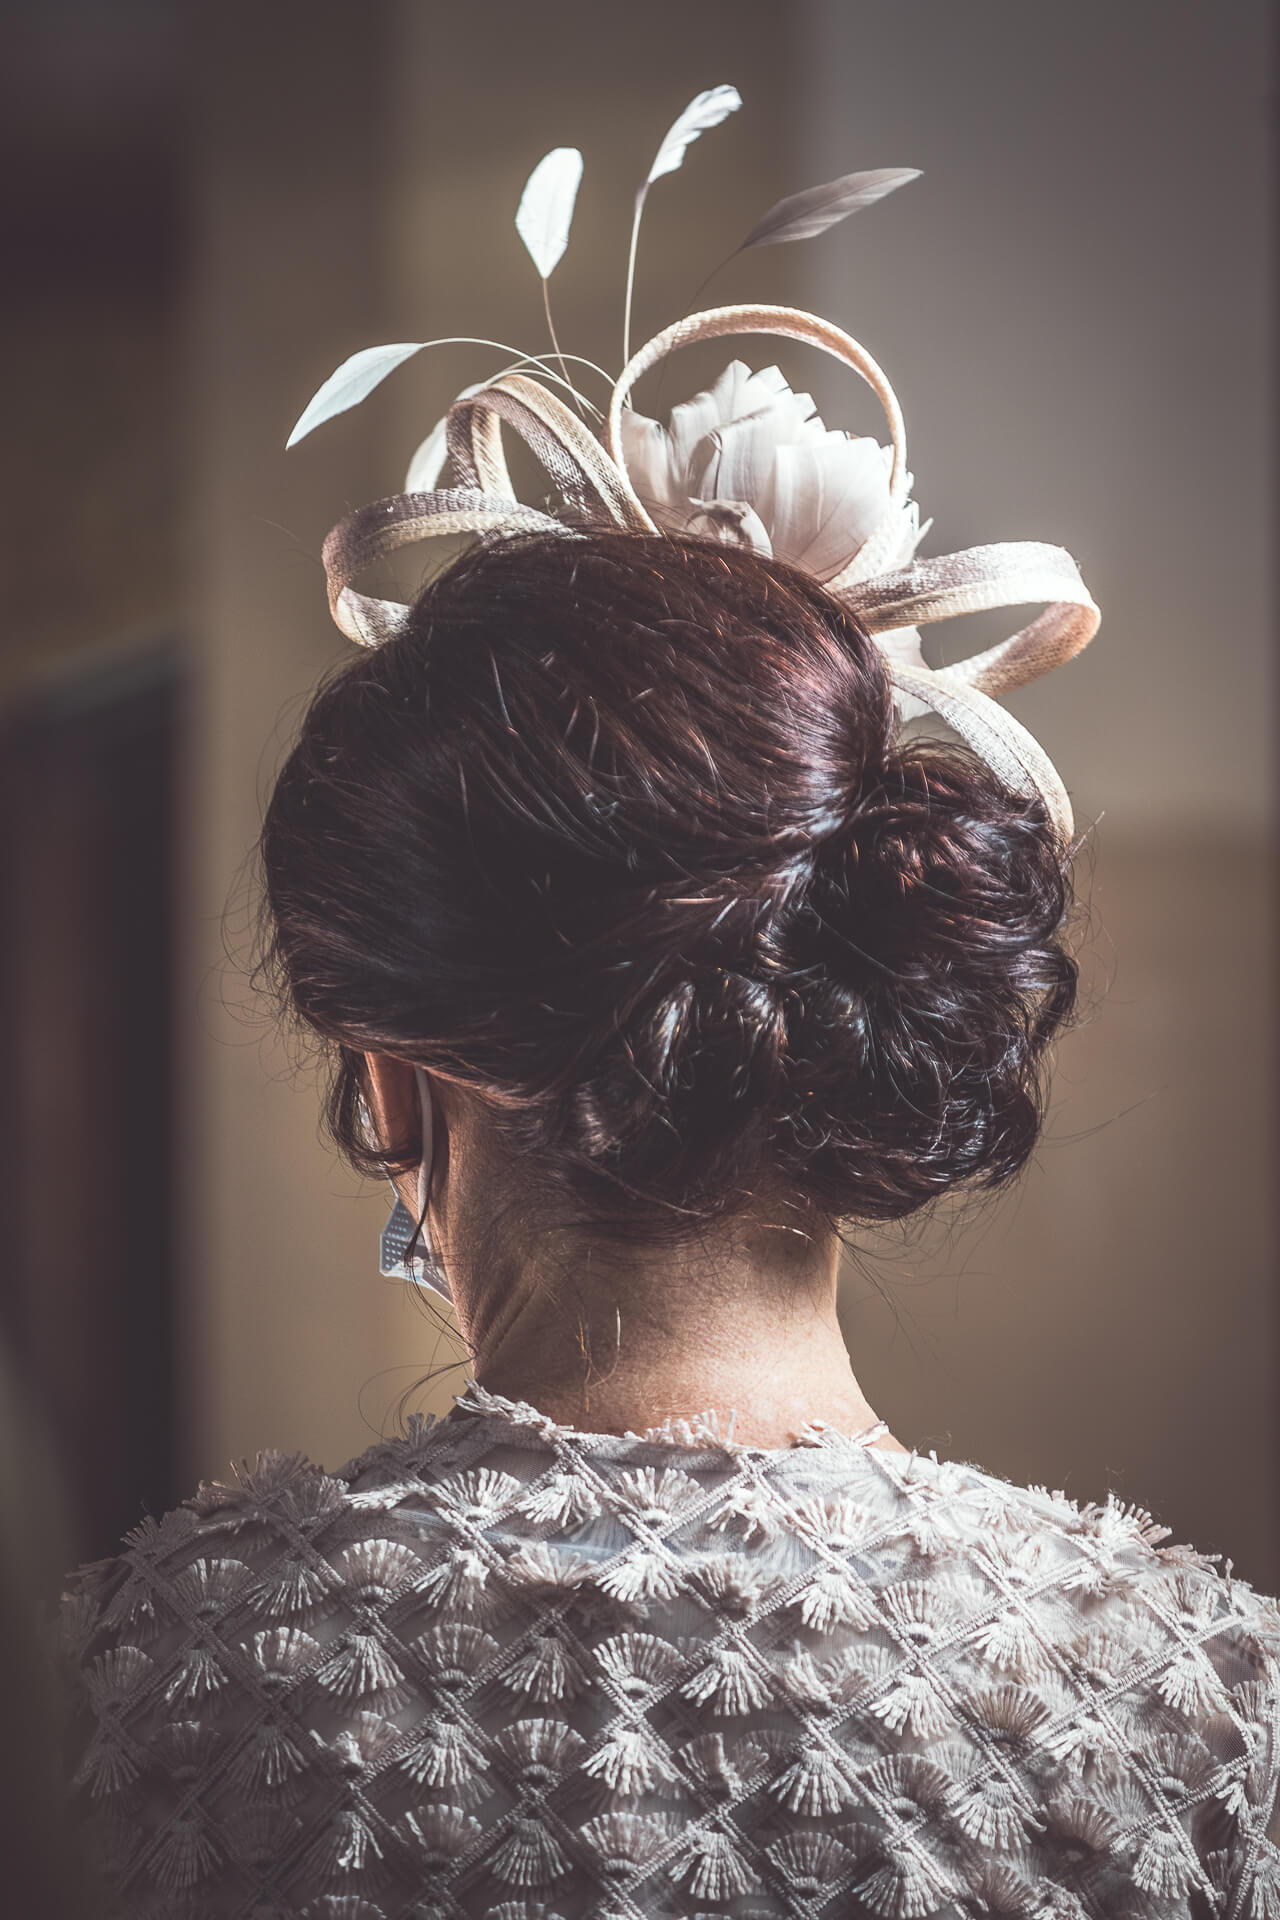 Taken from behind this is a head & shoulders image of the Mother of the Bride. Her hair is put up, and she wears a fascinator.